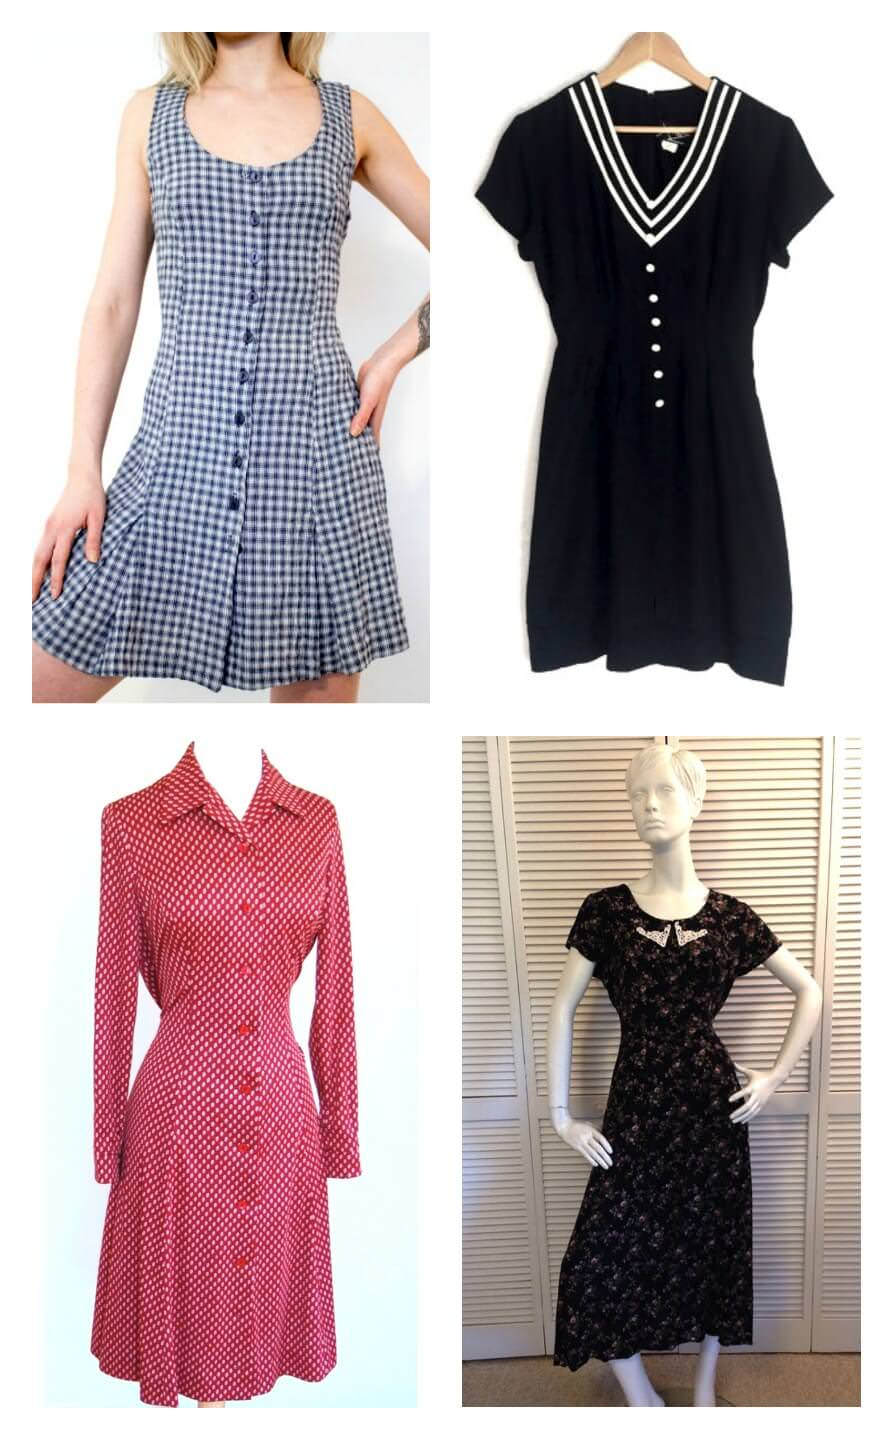 Clockwise from top left: Vintage plaid minidress, $26, Etsy; Vintage prep dress, $42, Etsy; Vintage 1970s dress, $34.99, Etsy; Vintage black floral print dress, $42, Etsy.